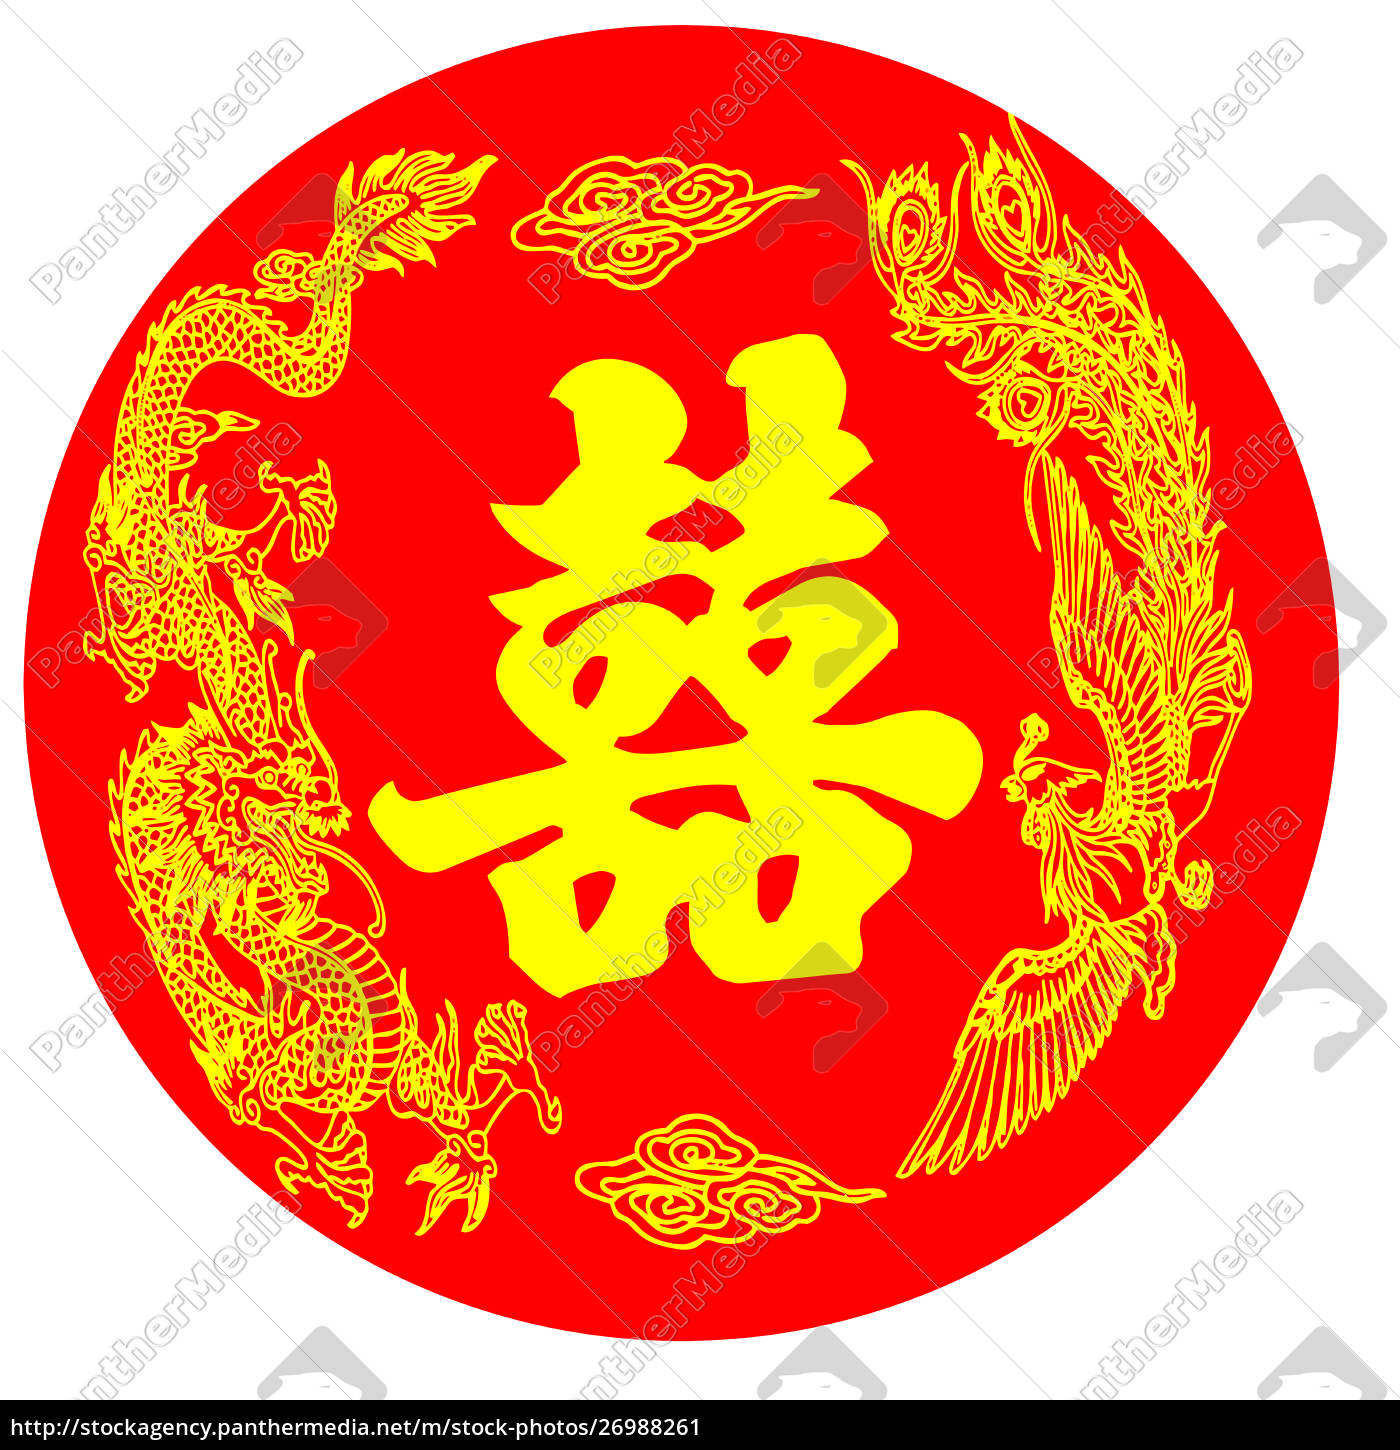 Royalty Free Image 26988261 Double Happiness Chinese Wedding Invitation Red Marry Love